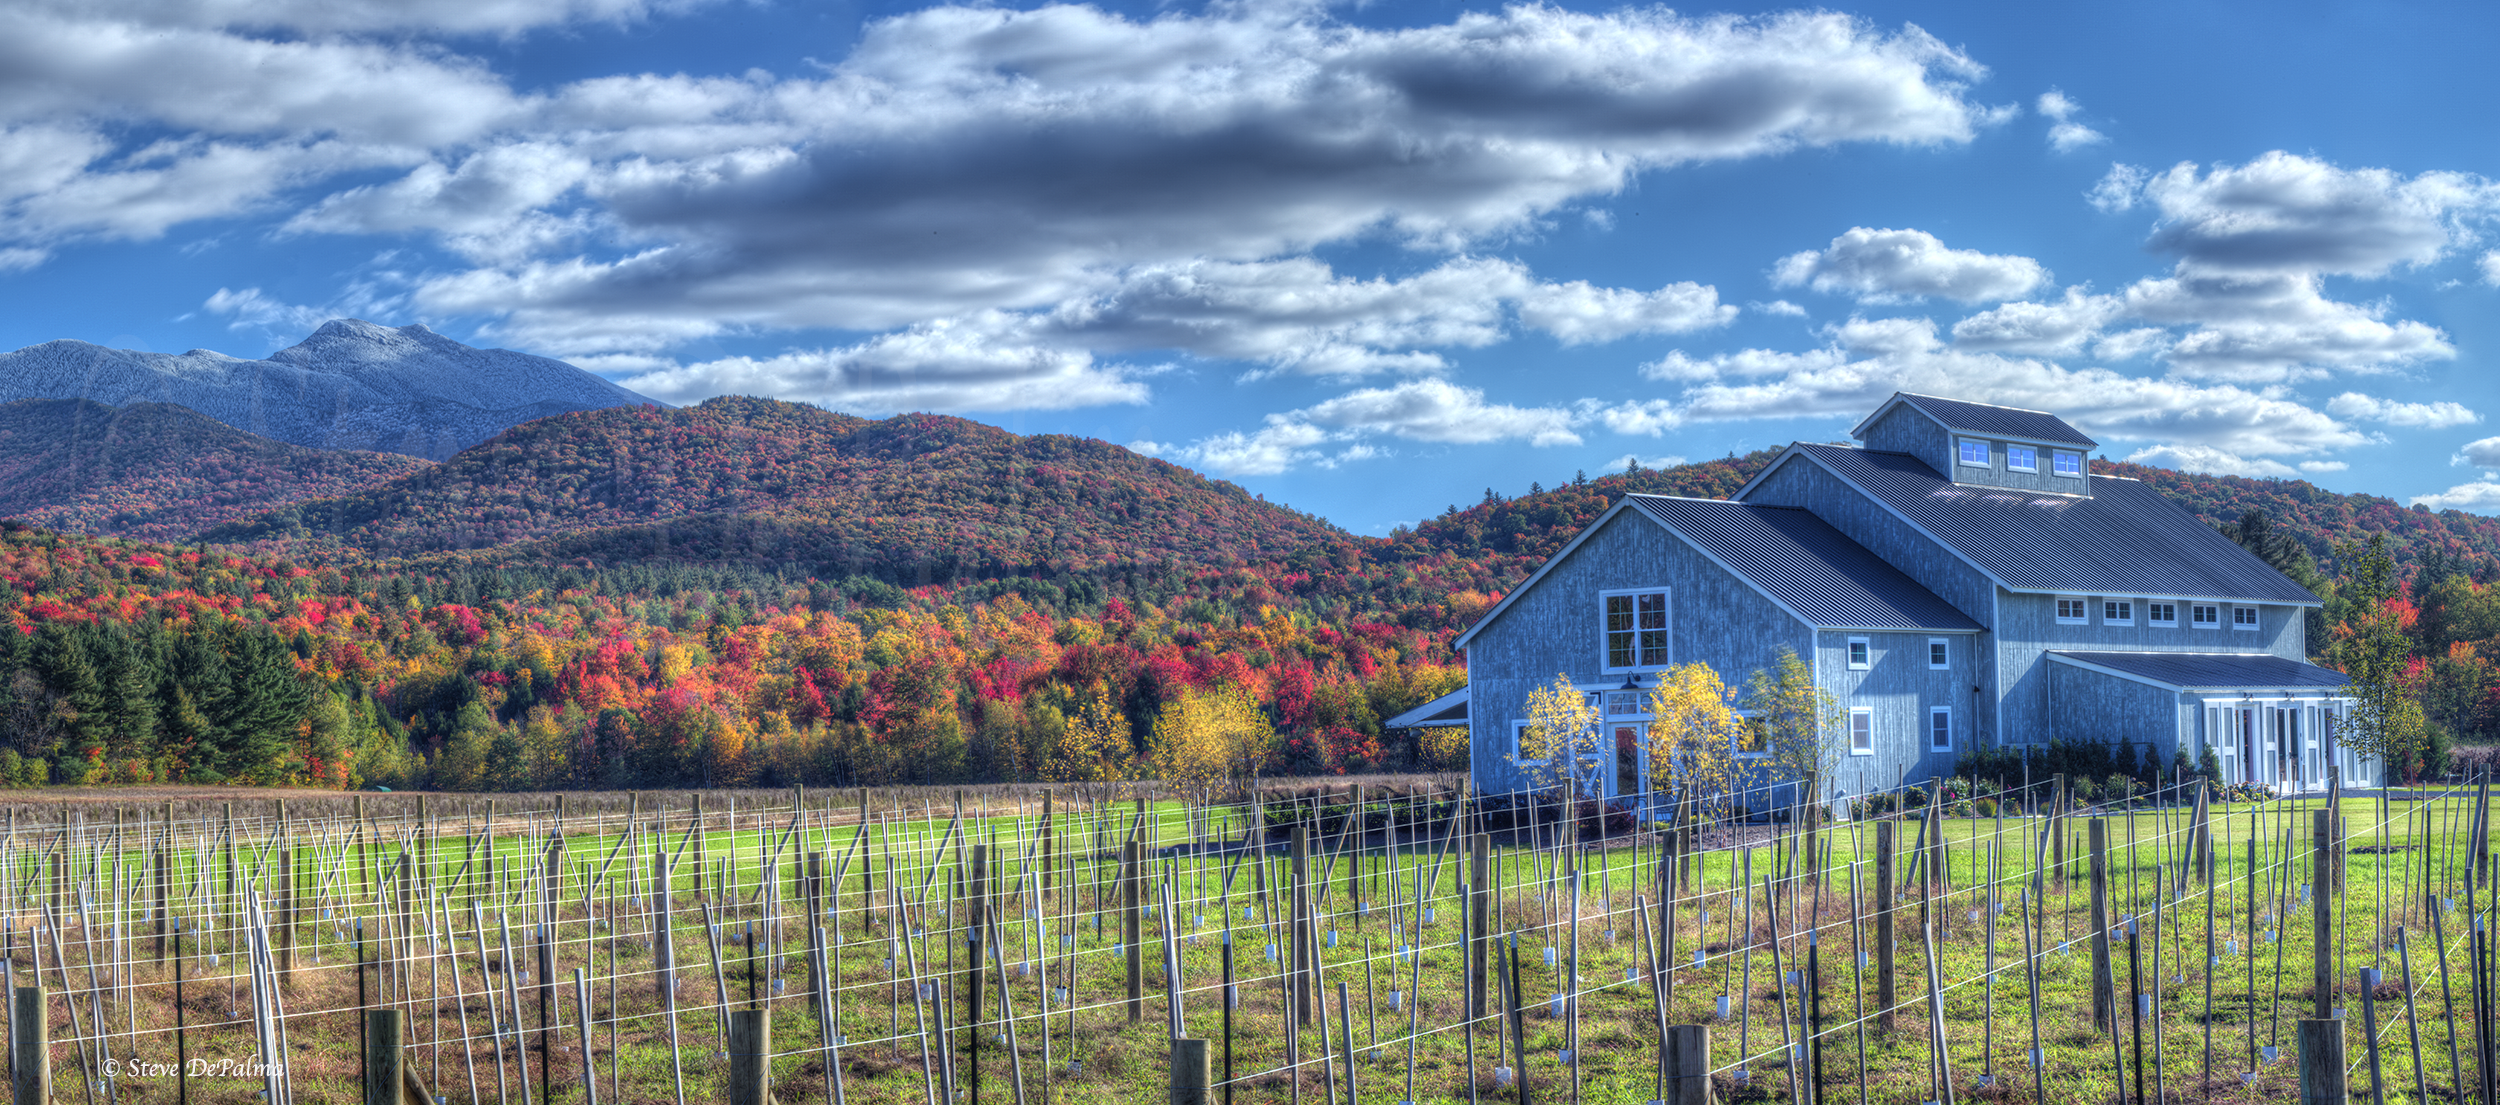 Your home for hosing a   Stowe Wedding   or Event. The Barn at Smugglers' Notch,   Stowe Winery   & Mt Mansfield